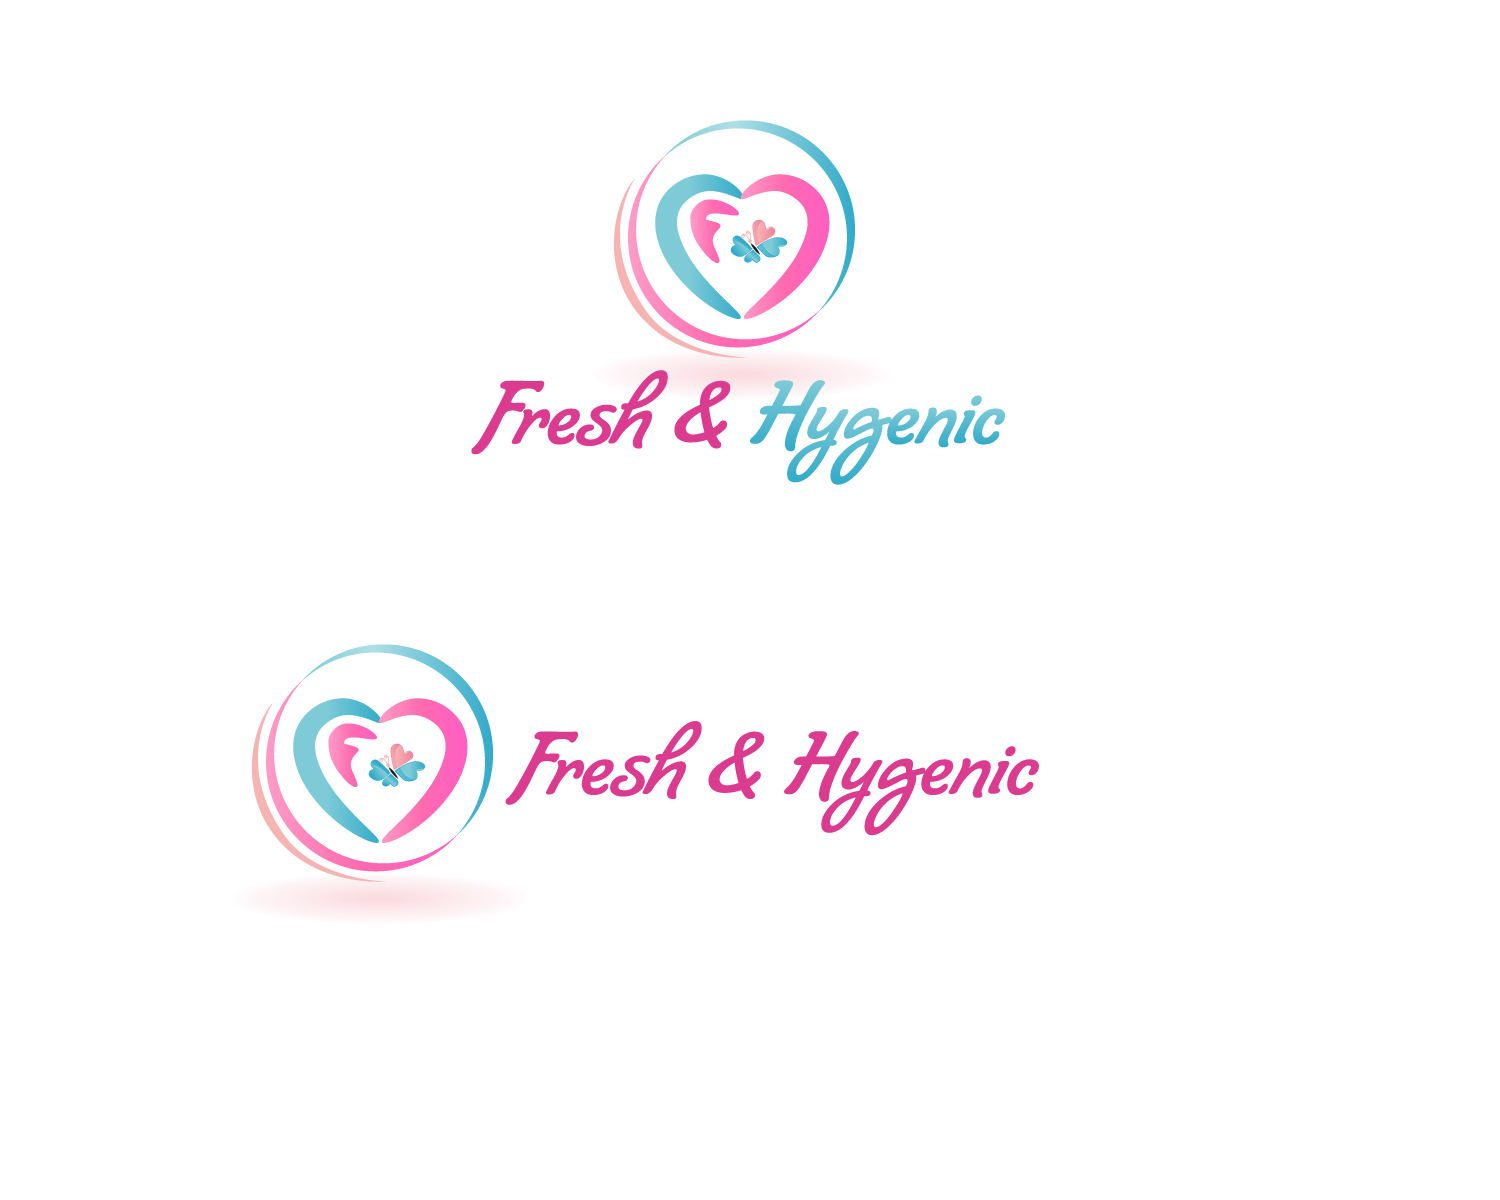 Logo Design by Jagdeep Singh - Entry No. 132 in the Logo Design Contest Fun Logo Design for Fresh & Hygenic.